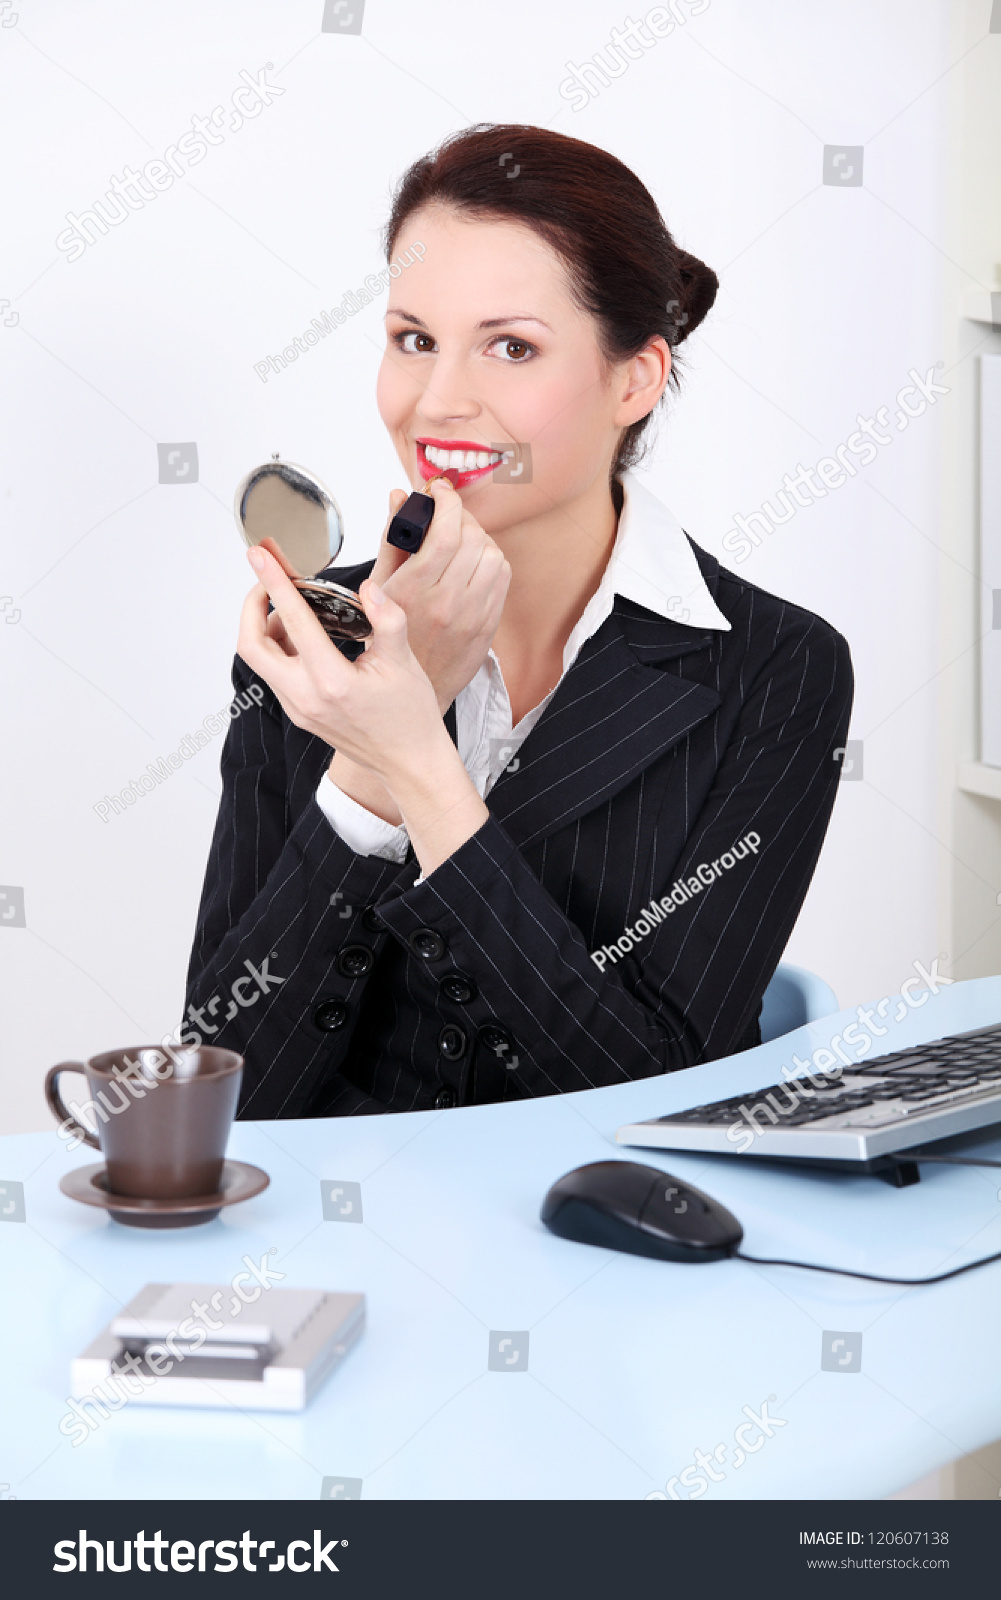 Office Worker Doing Make Up At Job Using Lipstick And Hand Mirror Stock Photo 120607138 ...